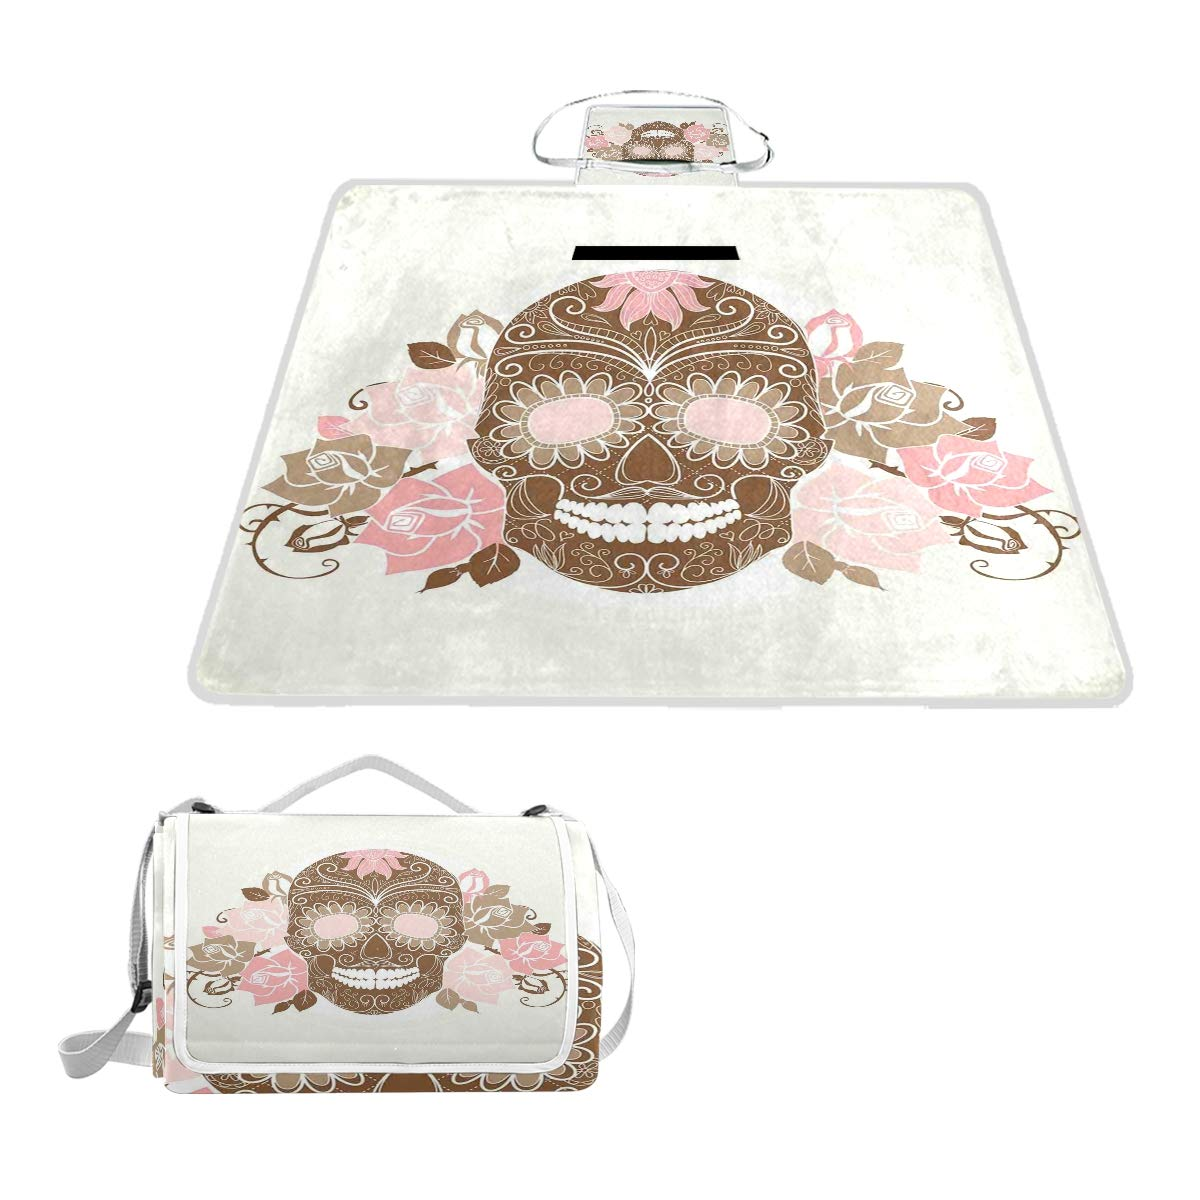 KVMV Sugar Skull Figure with Roses and Thorns in Pastel Colors Picnic Mat Sandproof and Waterproof Outdoor Picnic Blanket for Camping Hiking Beach Grass Travel by KVMV